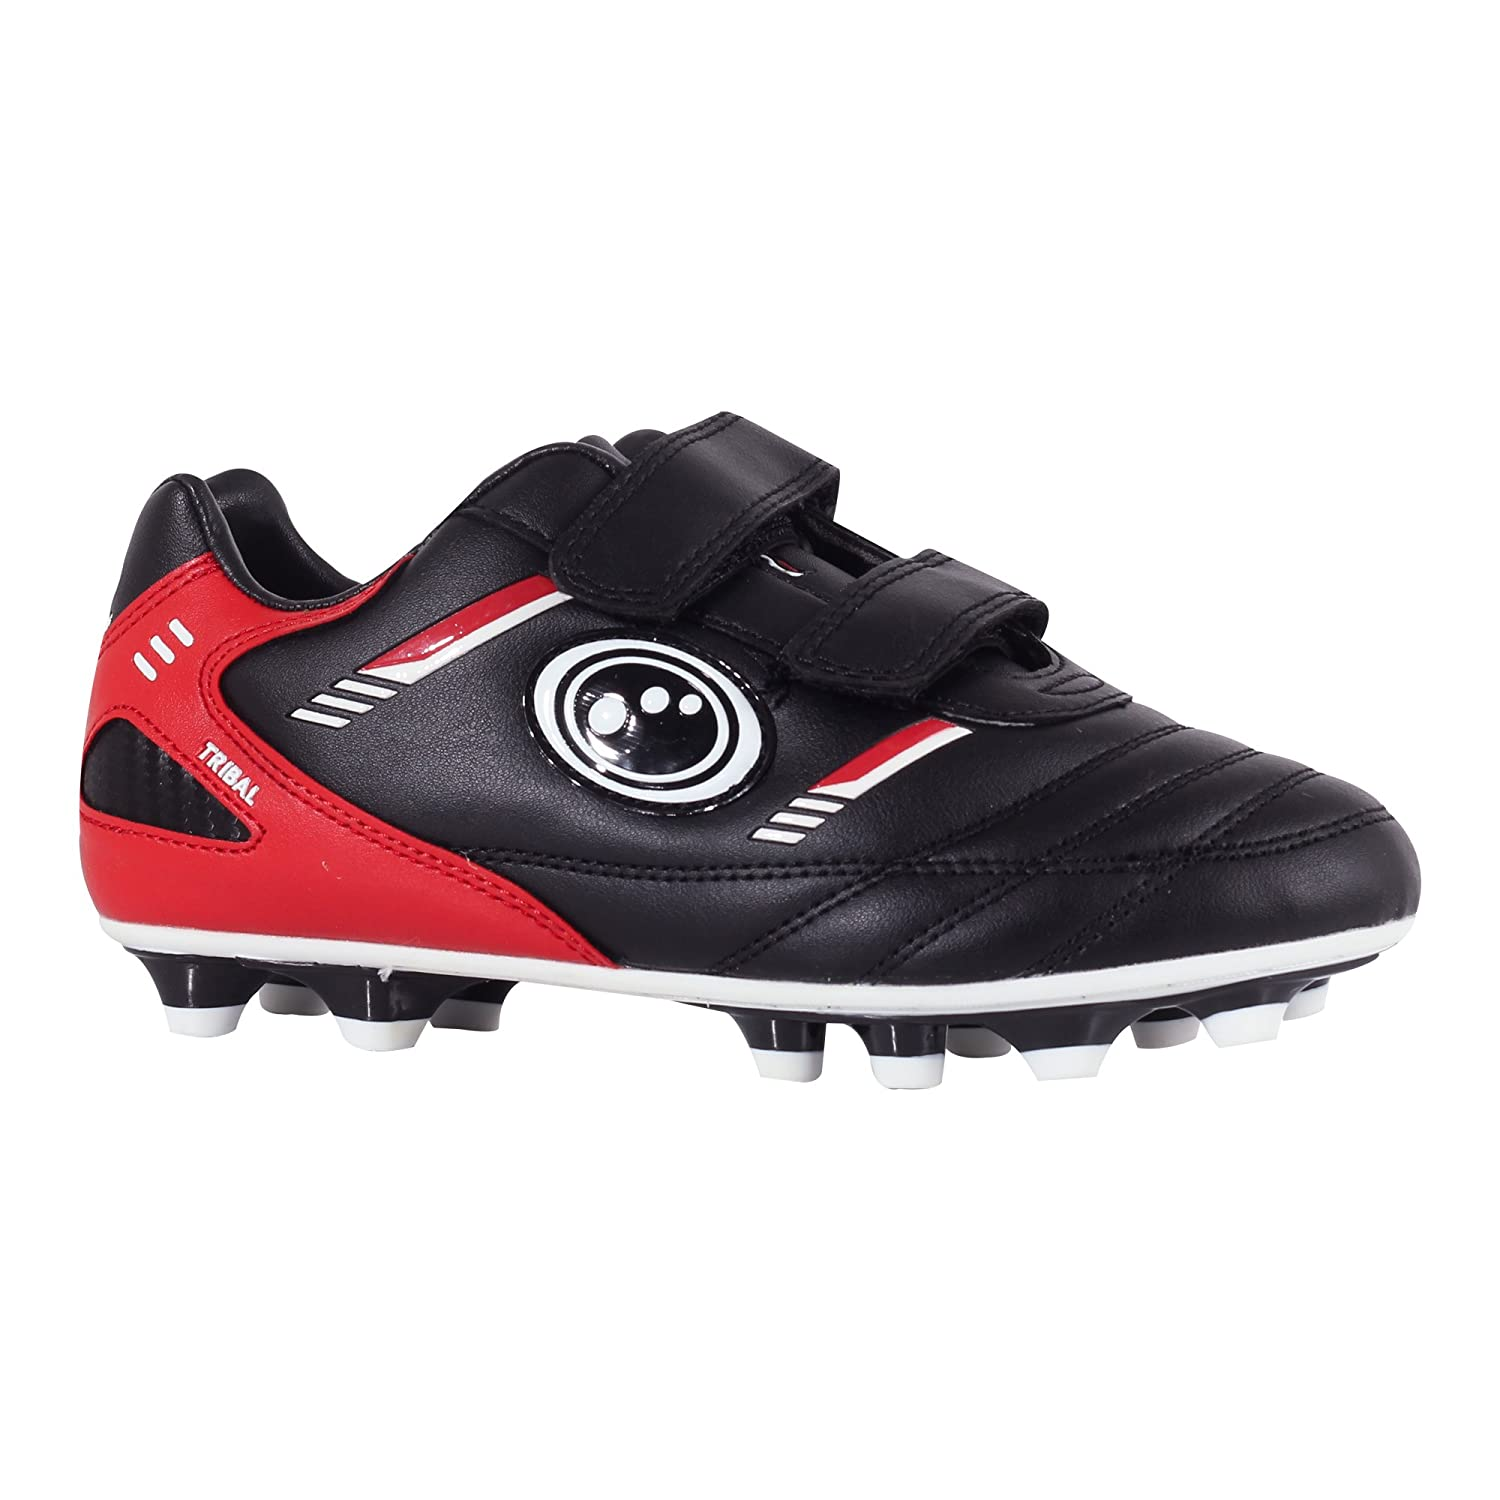 Optimum Tribal Moulded Stud, Boys Football Boots